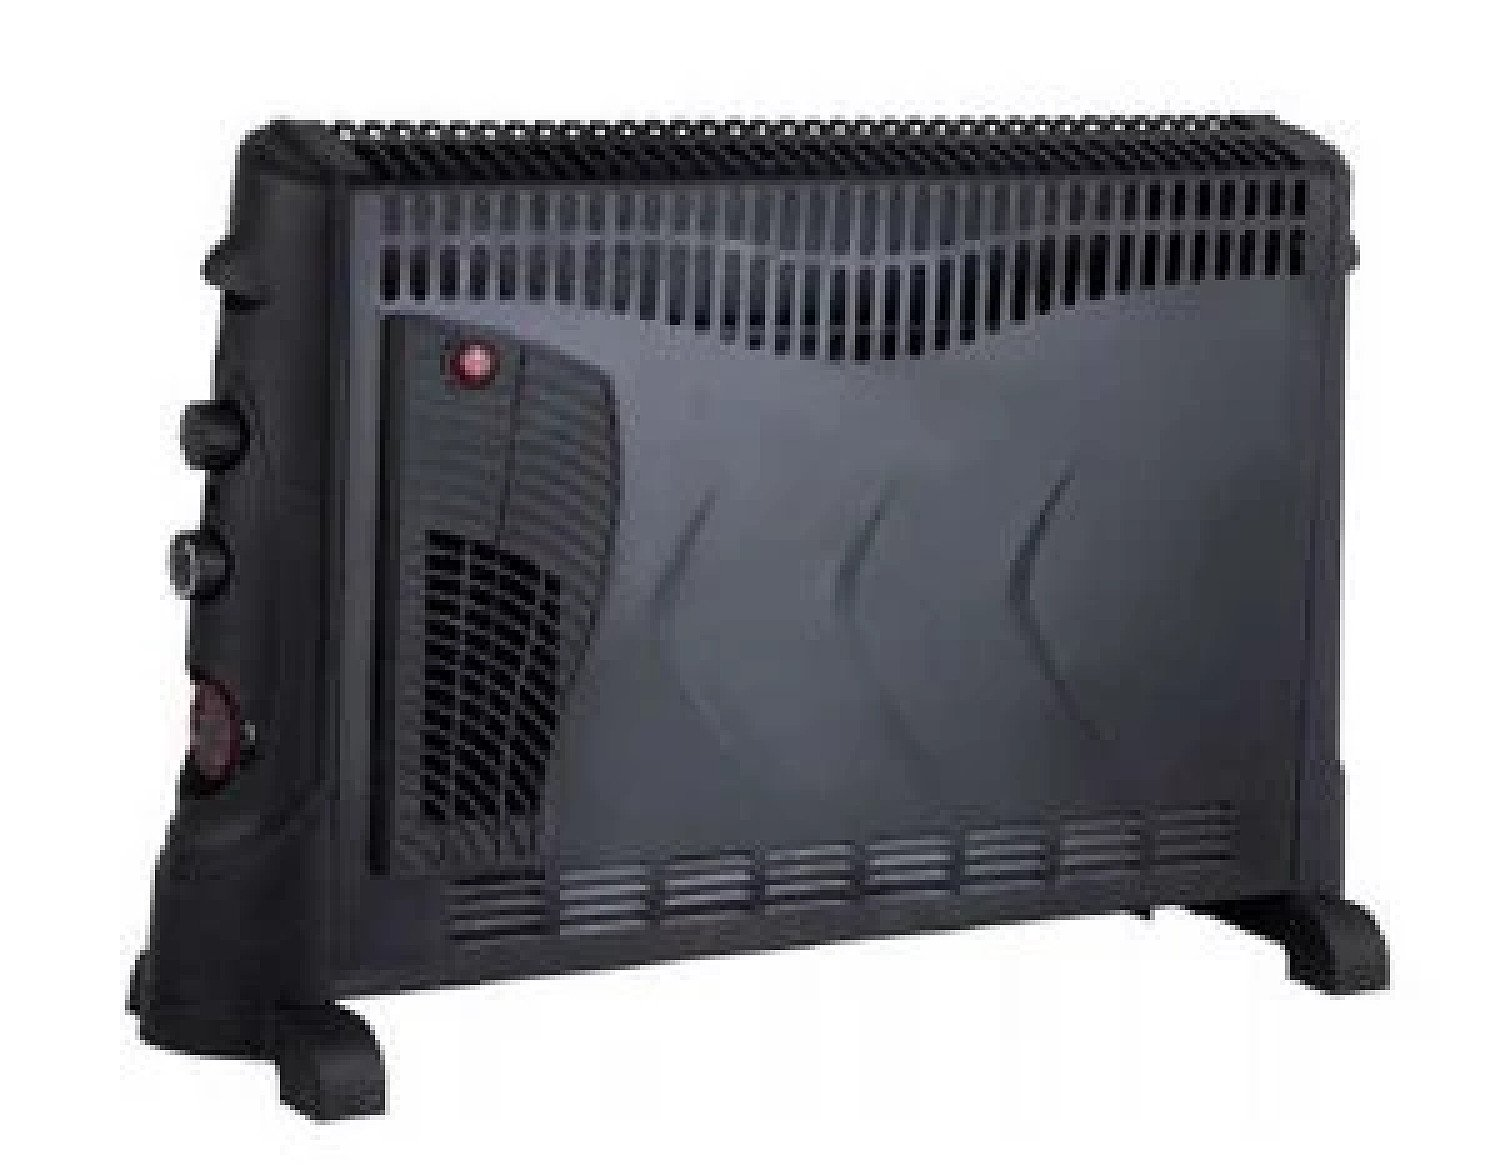 2kW Convector Heater with Turbo and Timer Free Postage